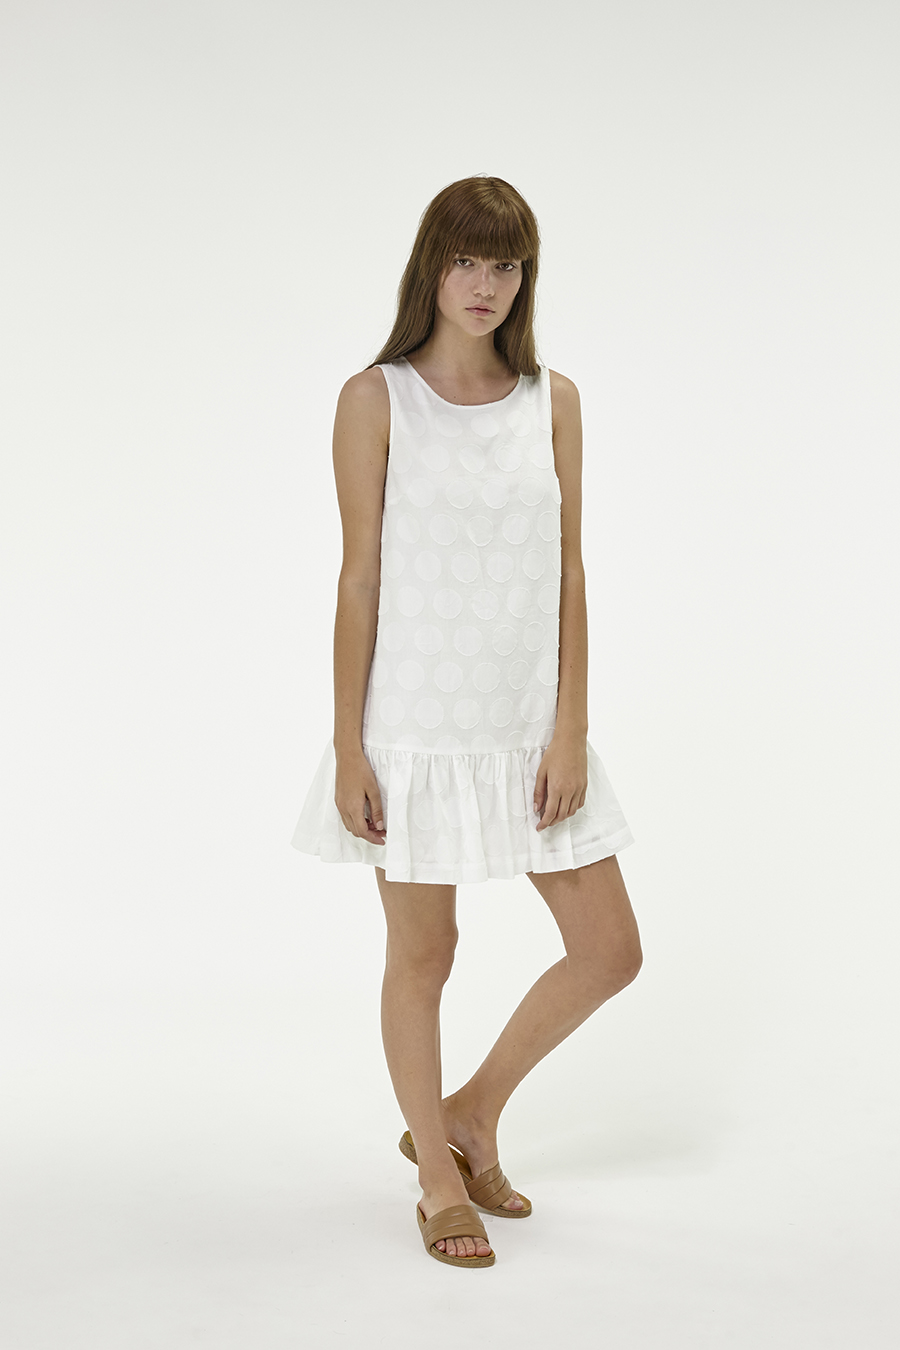 Huffer_Q3-16_W-Spot-Port-Dress_White-04